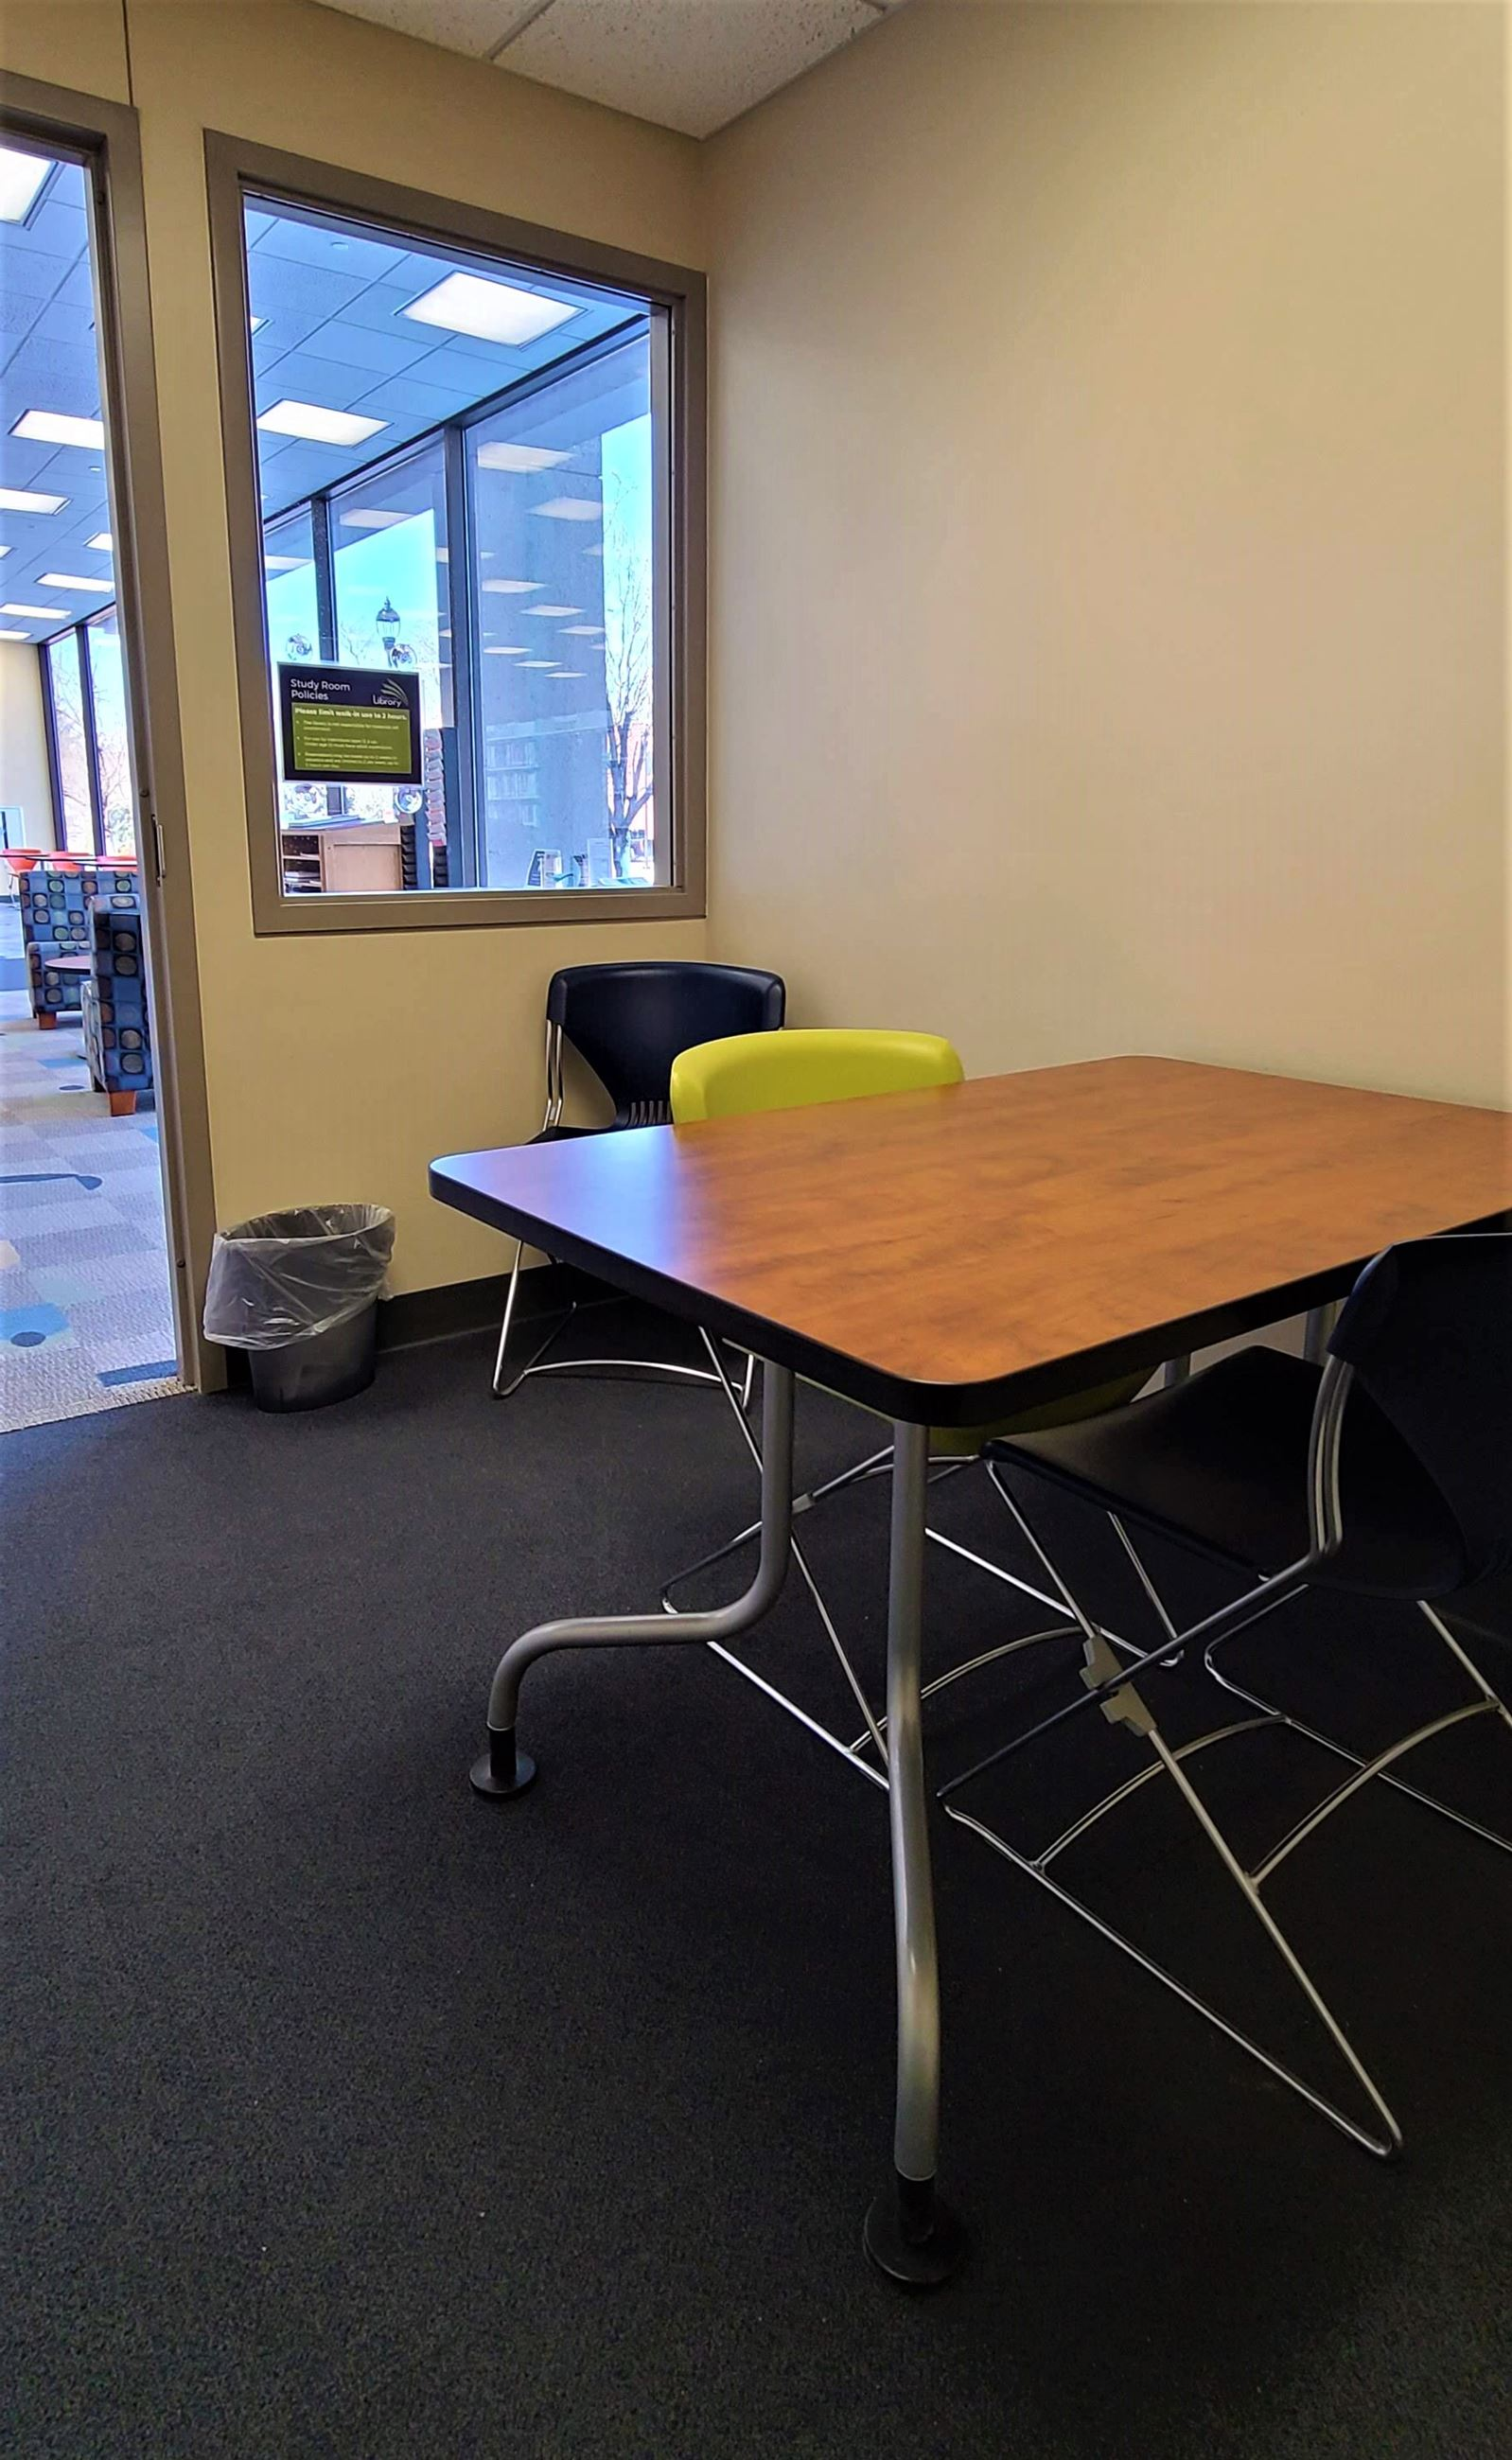 South Small Study Room